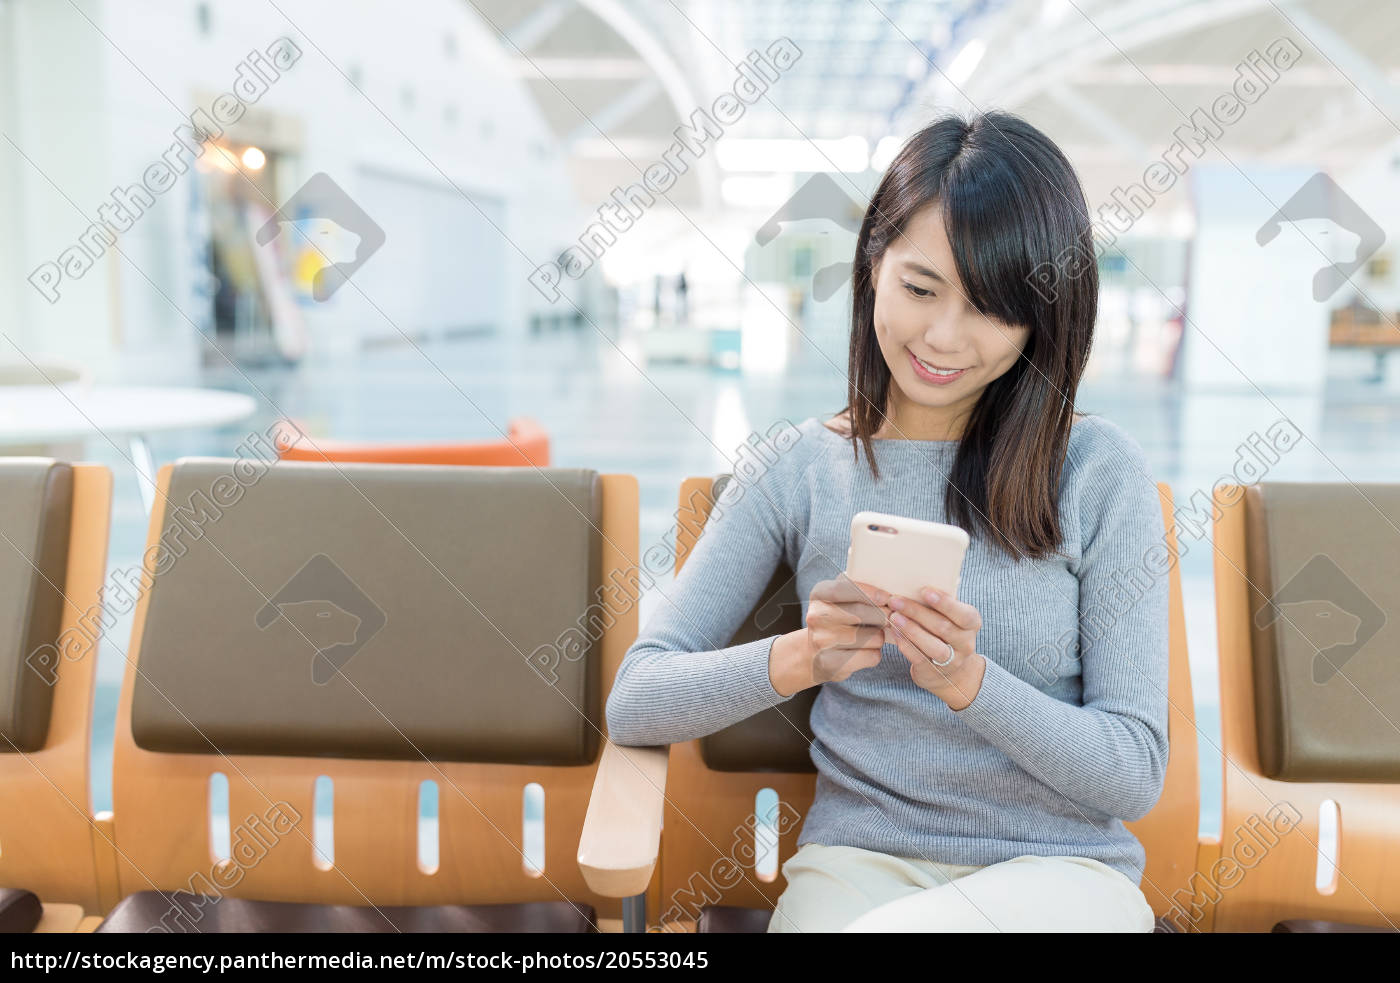 woman, using, cellphone, phone, at, airport - 20553045